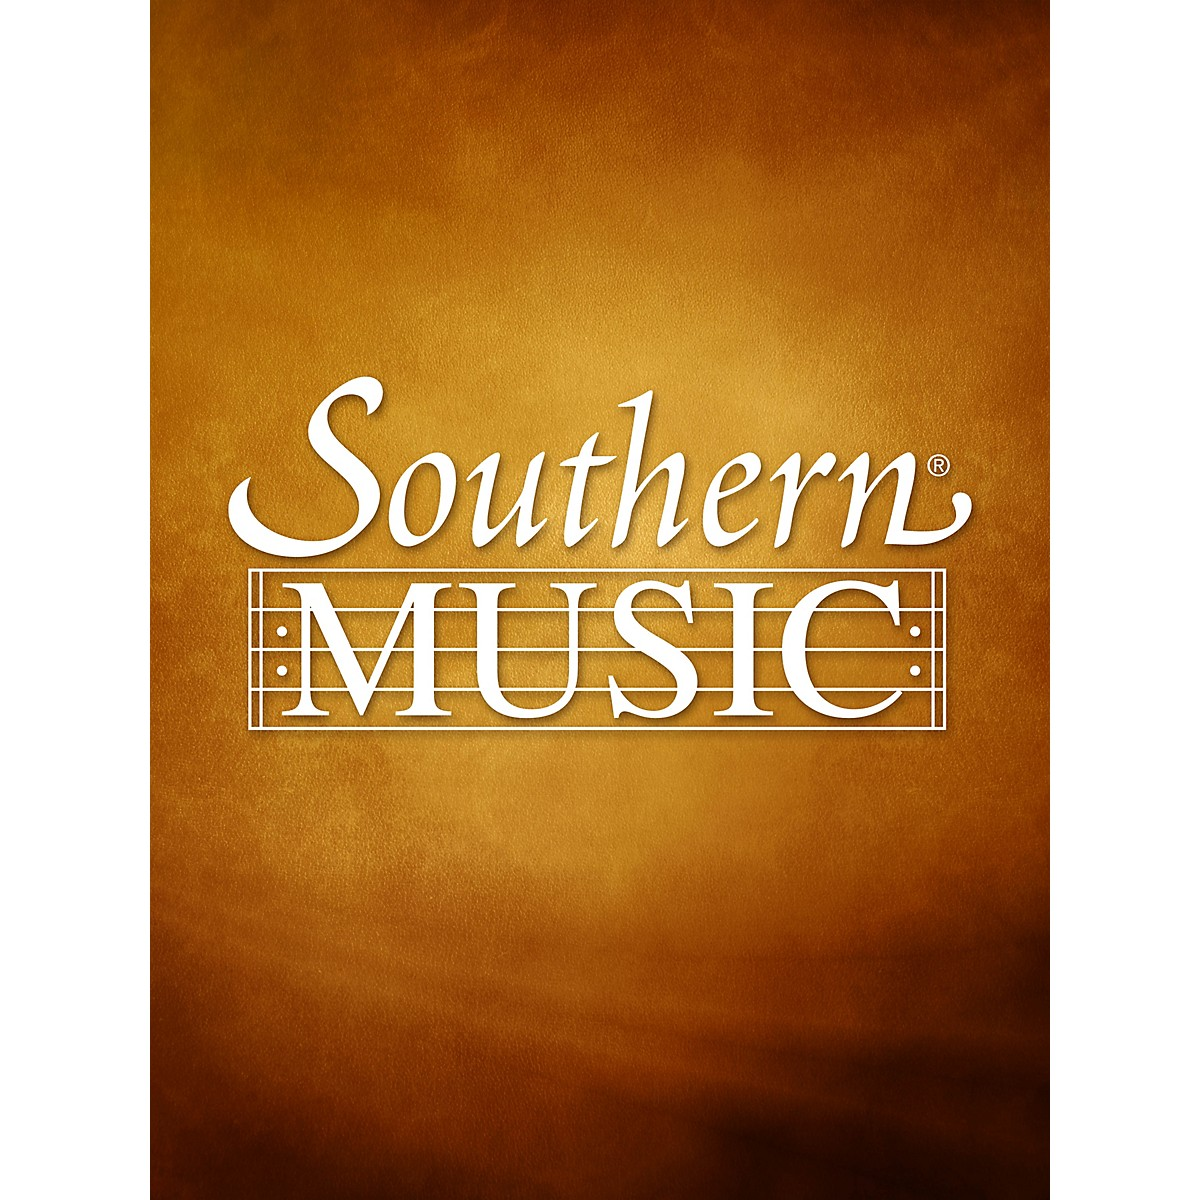 Southern Conc in F Min Southern Music Series by Georg Philipp Telemann Arranged by Albert Andraud